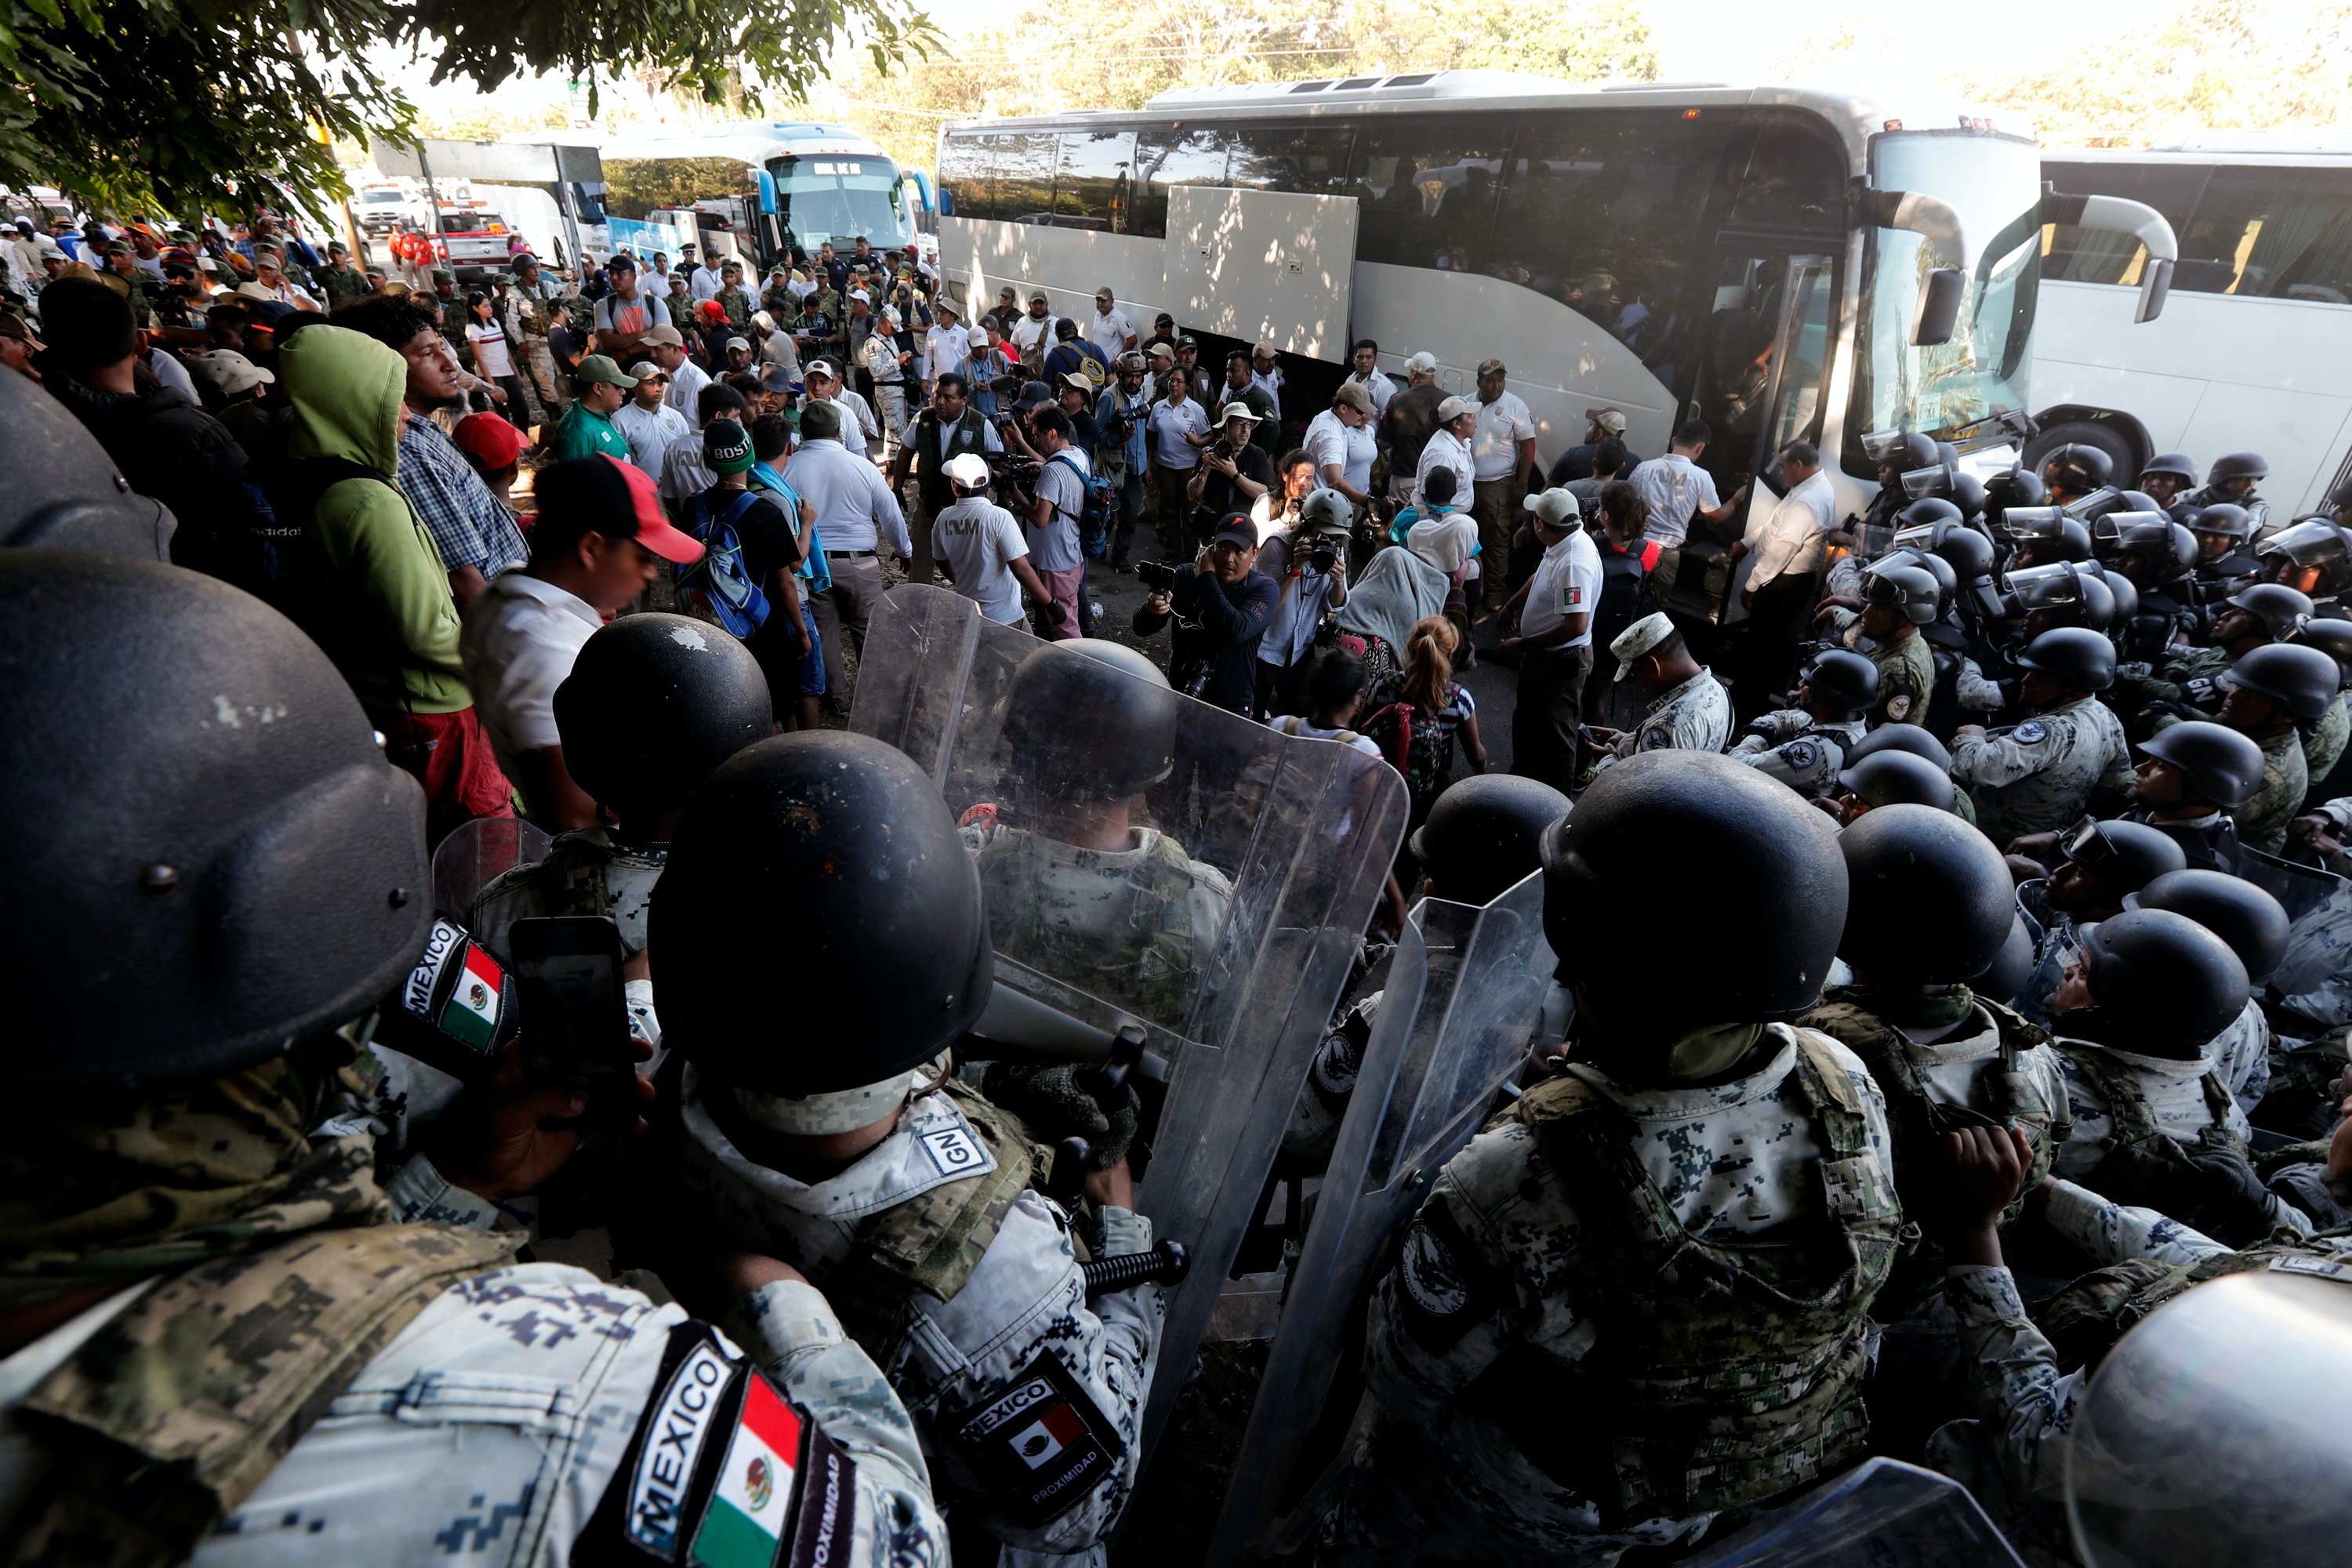 Migrants board buses after their passage was blocked by Mexican National Guards near Tapachula, Mexico, Thursday, Jan. 23, 2020. Hundreds of Central American migrants crossed the Suchiate River into Mexico from Guatemala Thursday after a days-long standoff with security forces. (AP Photo/Marco Ugarte)